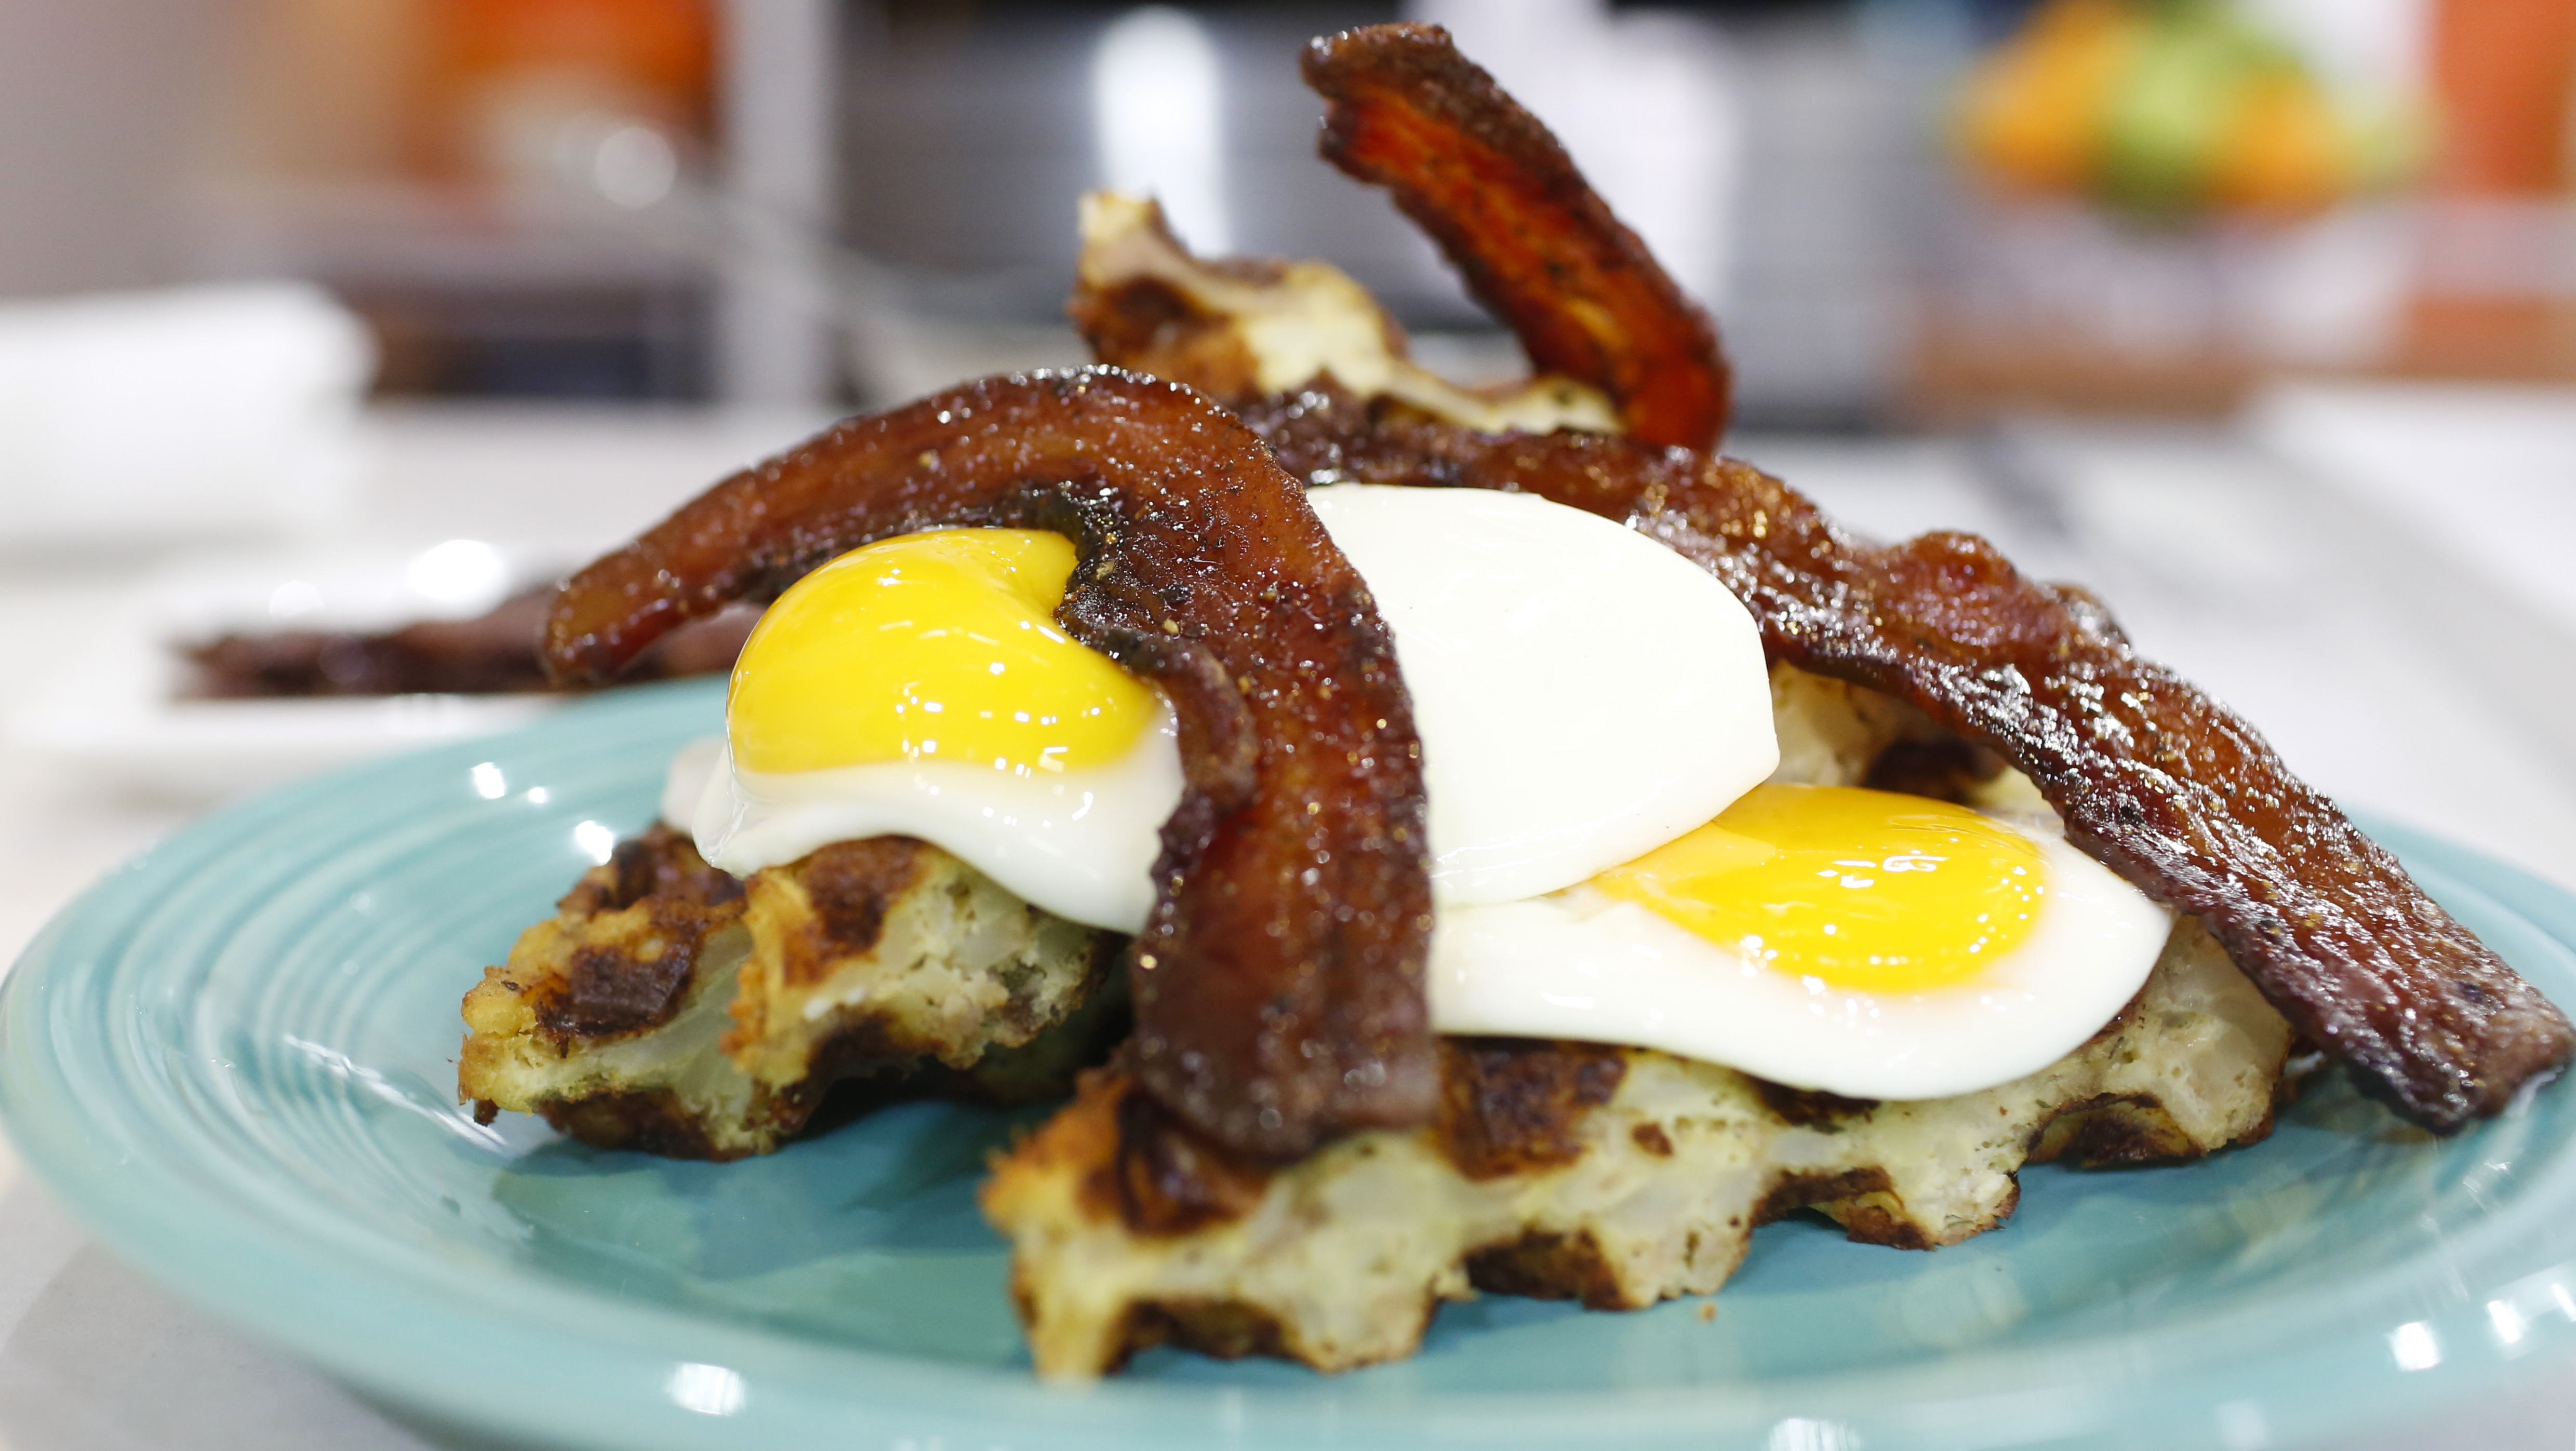 Hash Brown Waffle with Fried Egg and Candied Bacon - TODAY.com